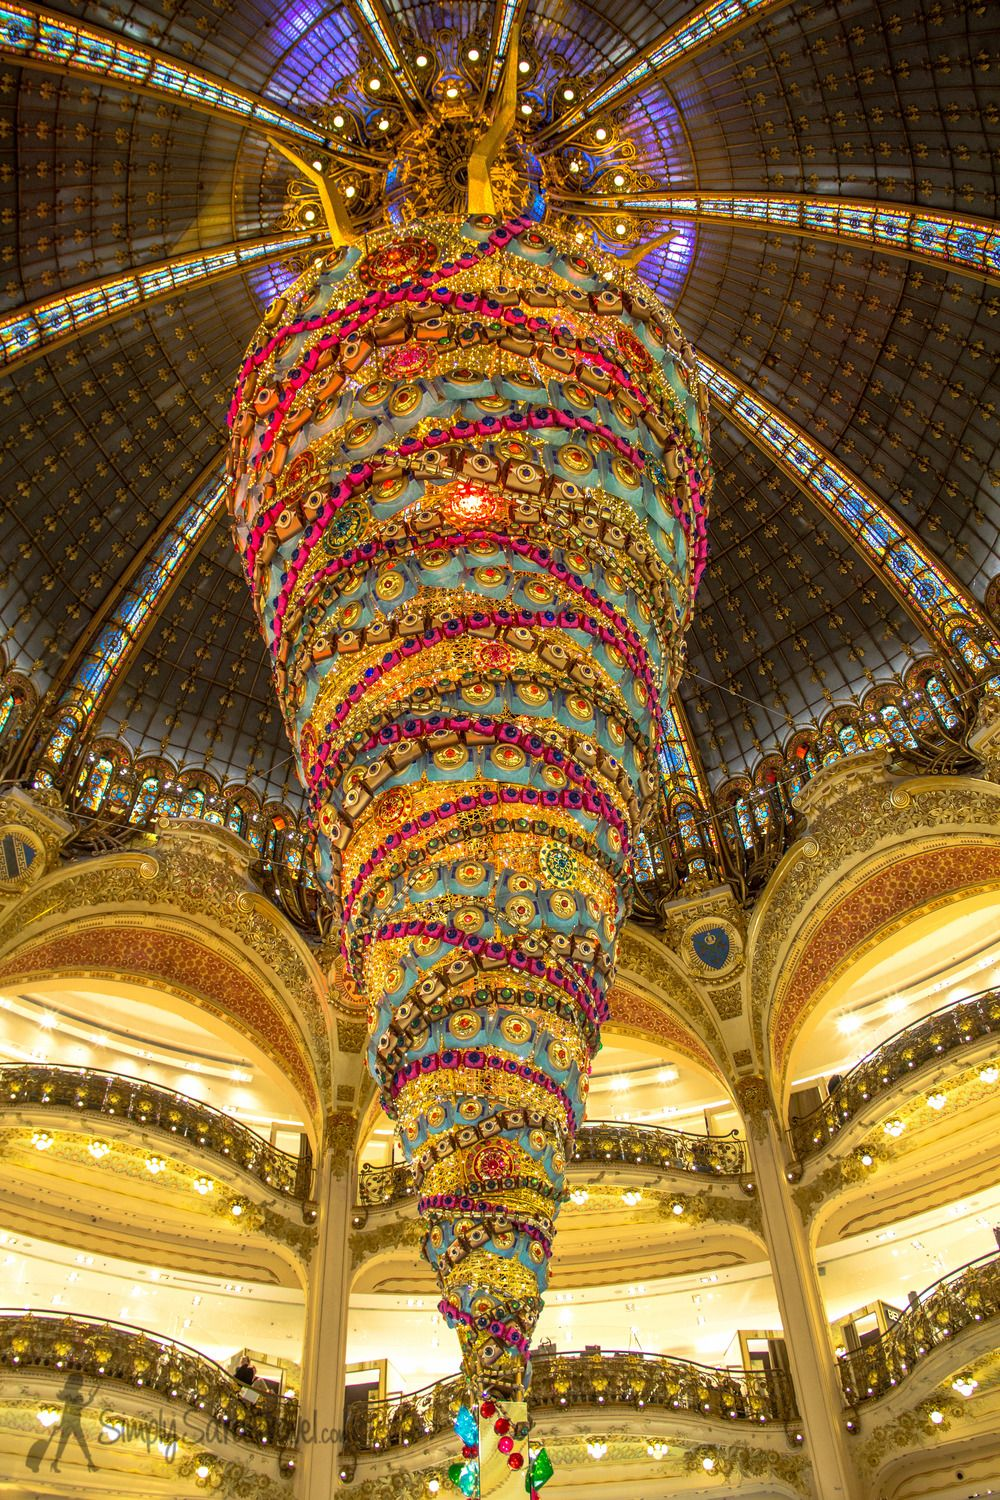 The department store, Galeries Lafayette, has quite the tree to see in #Paris this year!